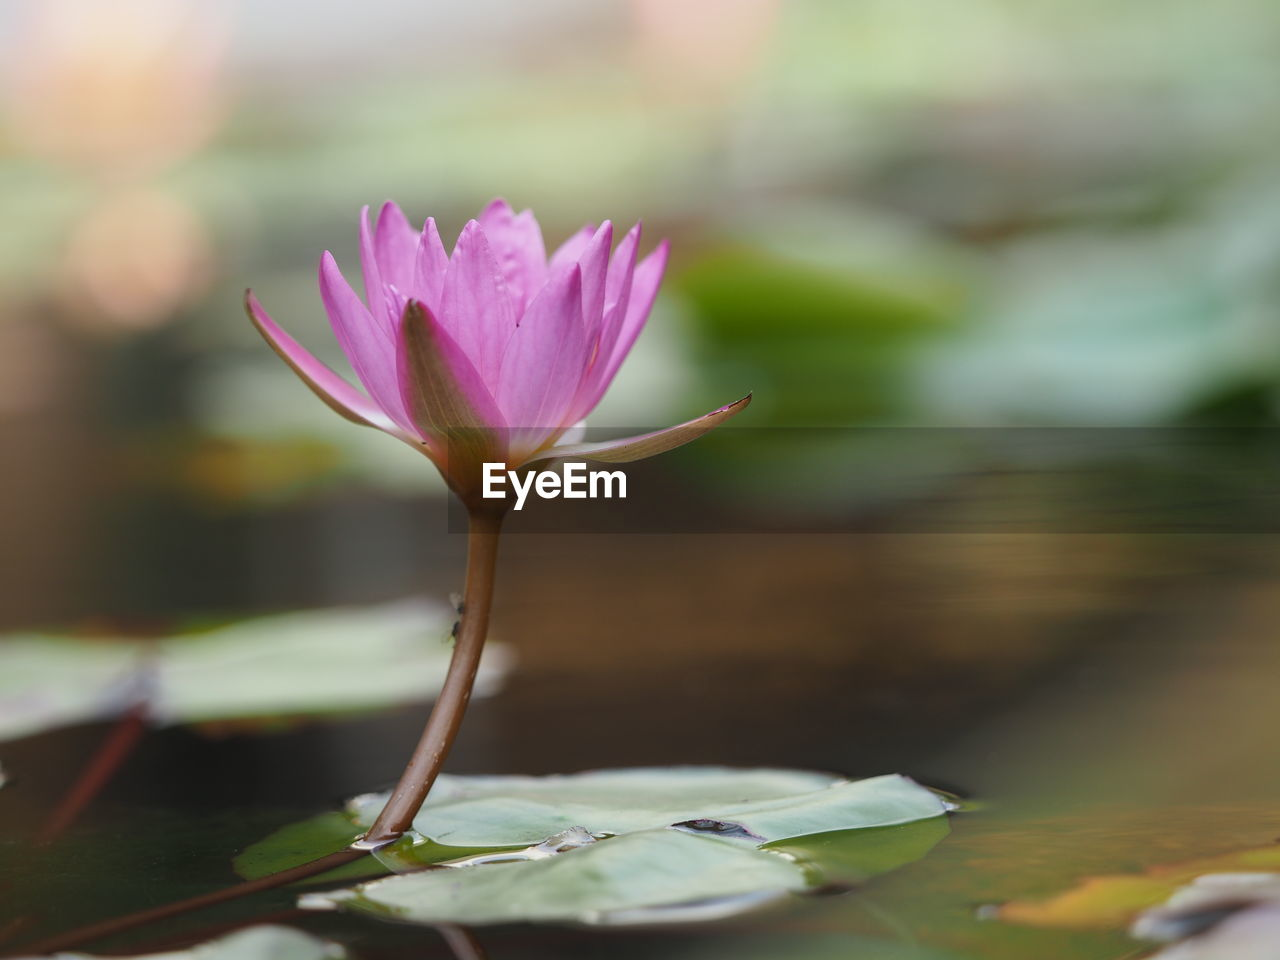 flowering plant, flower, beauty in nature, fragility, vulnerability, plant, close-up, nature, growth, pink color, freshness, focus on foreground, petal, no people, selective focus, leaf, plant part, inflorescence, water lily, flower head, outdoors, purple